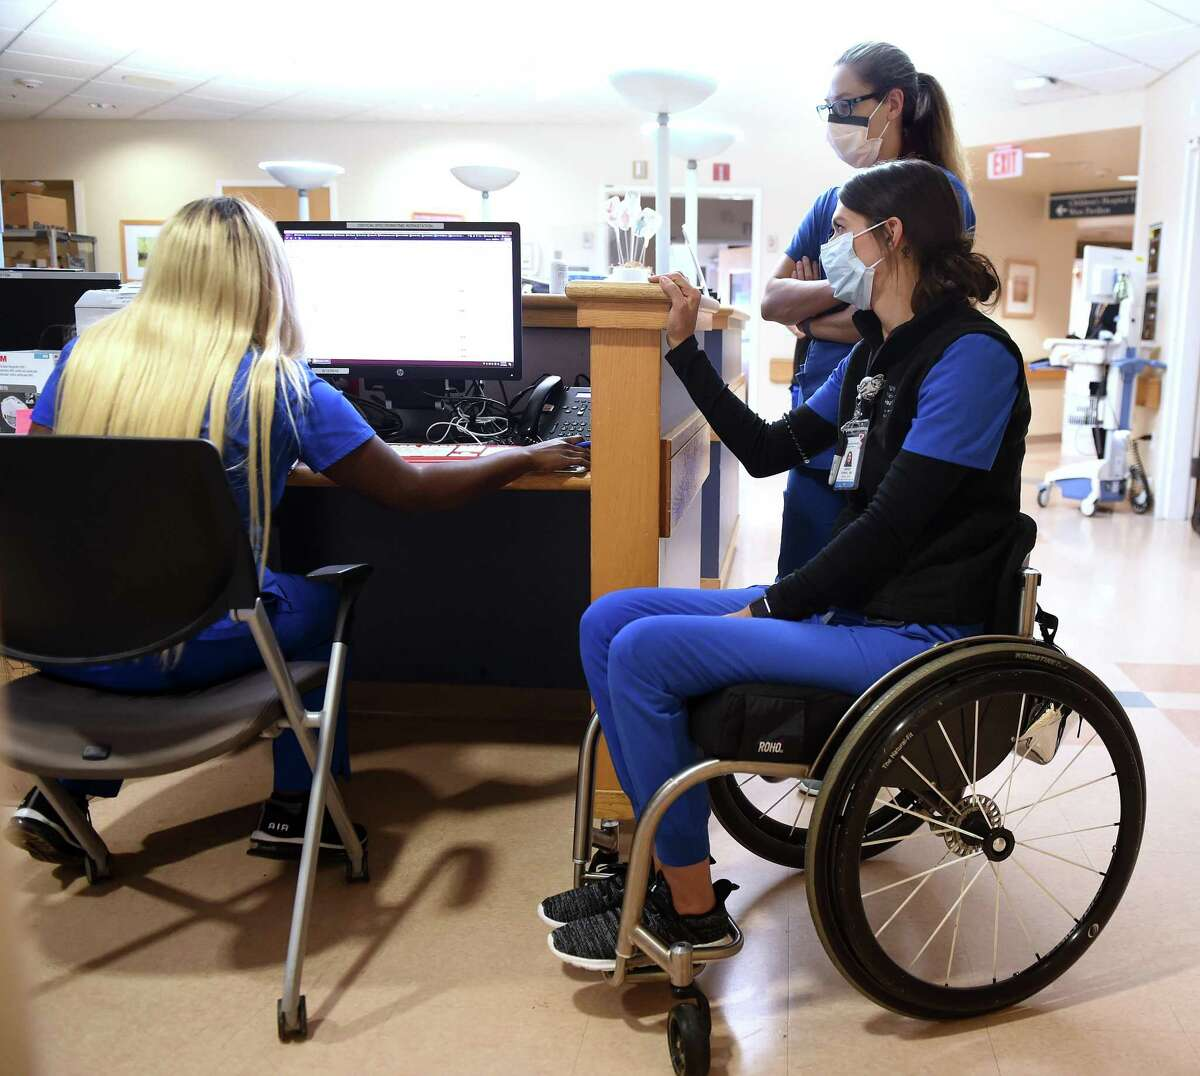 Registered nurse Lindsey Runkel, right, speaks with charge nurse Shaniya Tripp, left, at Yale New Haven Hospital's kidney and liver transplant unit on Aug. 11, 2020. In the background is registered nurse Amy Smith.